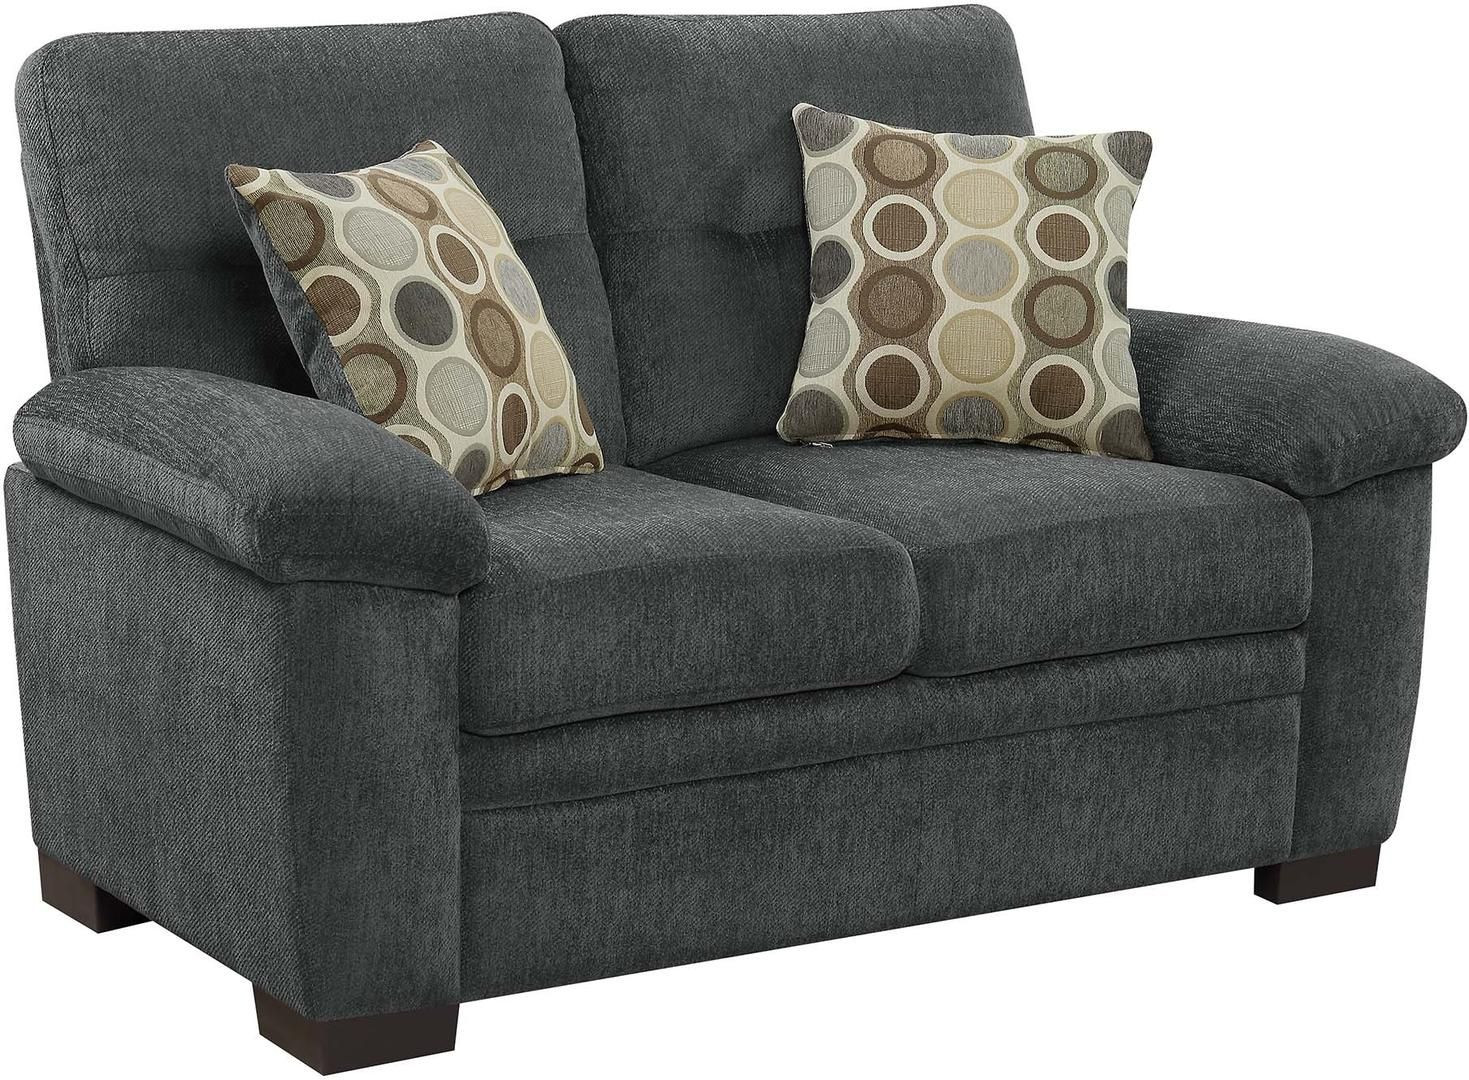 Casual Loveseat in Charcoal Chenille Fabric